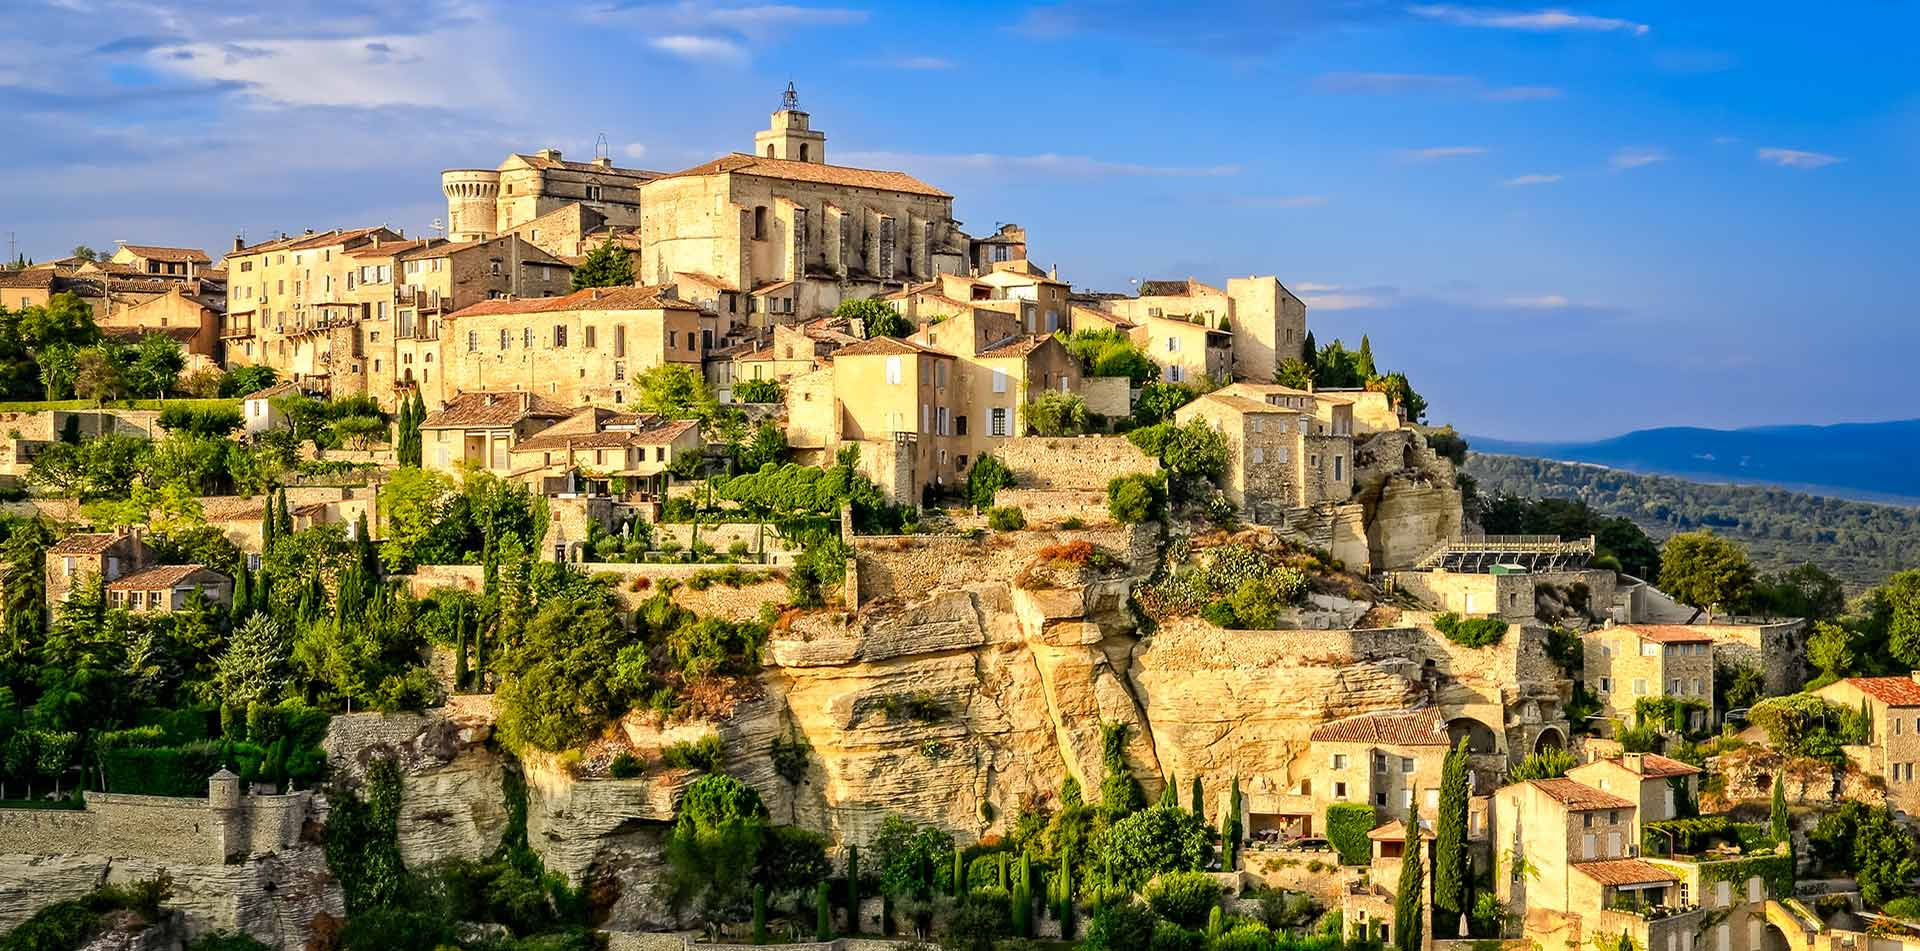 Europe France Provence Gordes medieval hilltop village commune at sunset - luxury vacation destinations